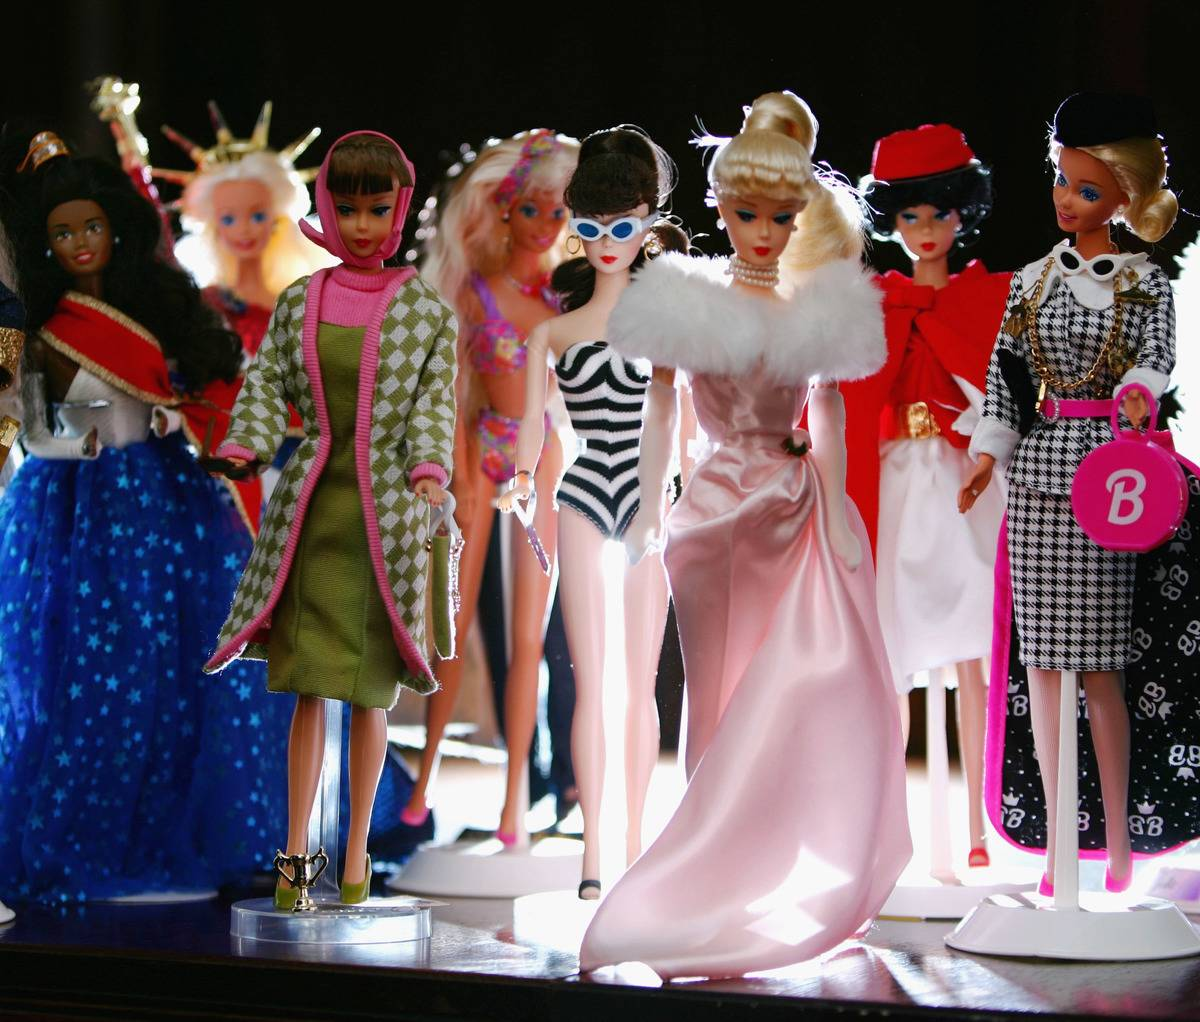 a bunch of different Barbies standing around